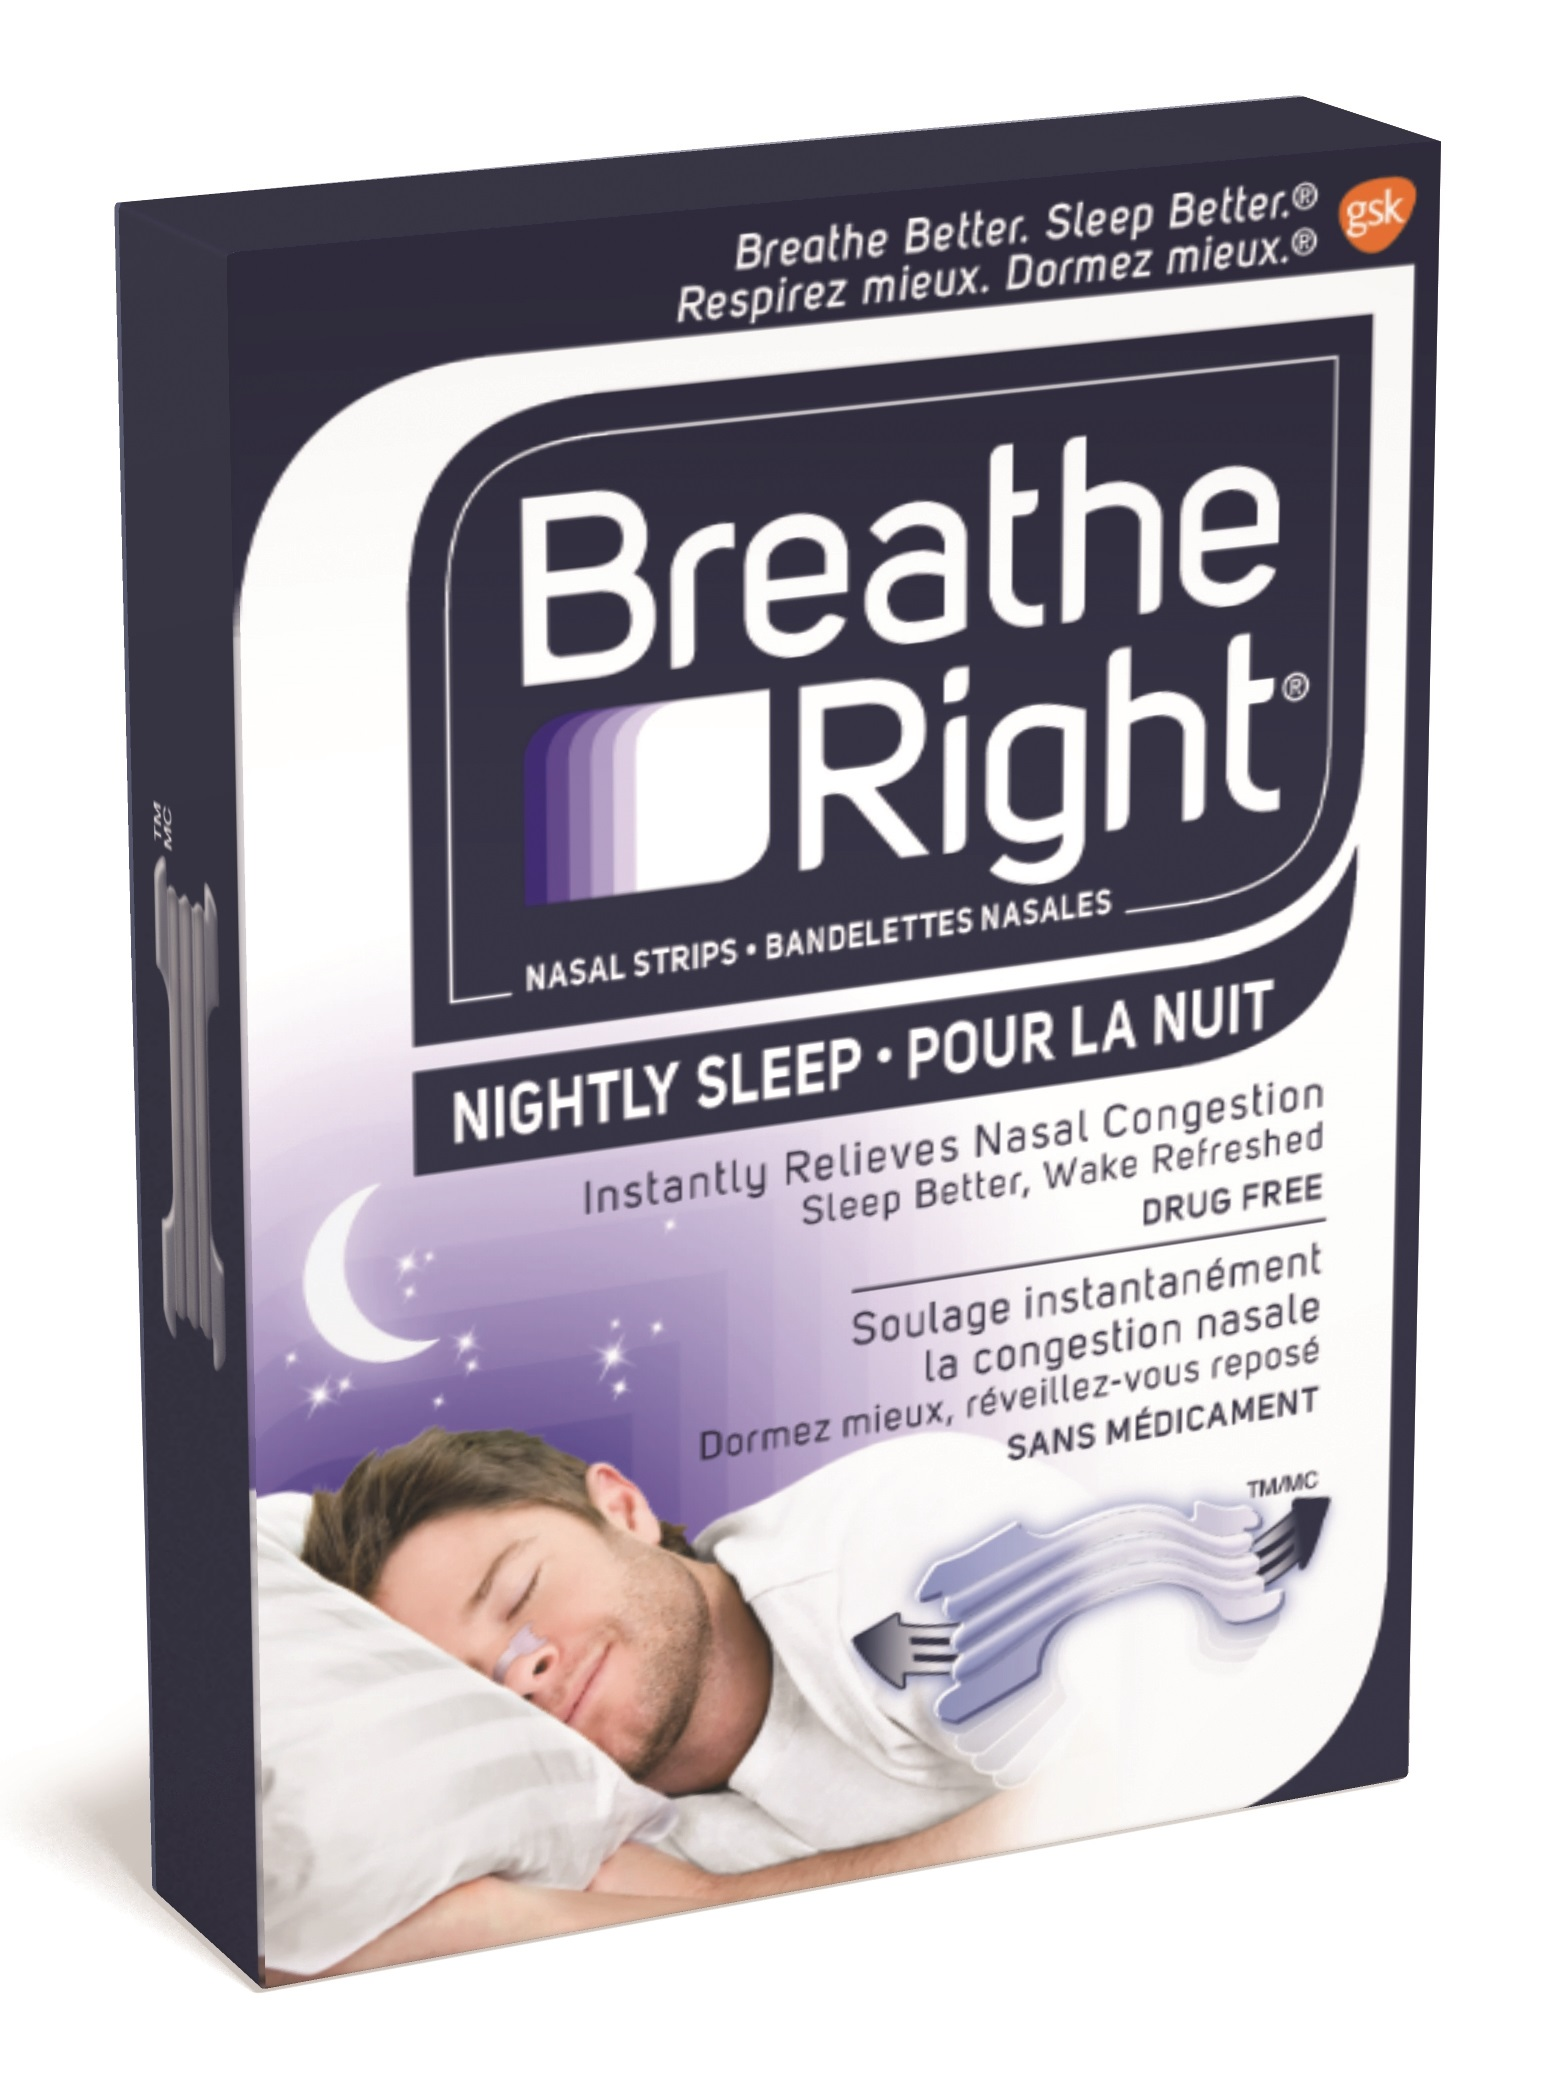 A new box of Breathe Right Nightly Sleep nasal strips